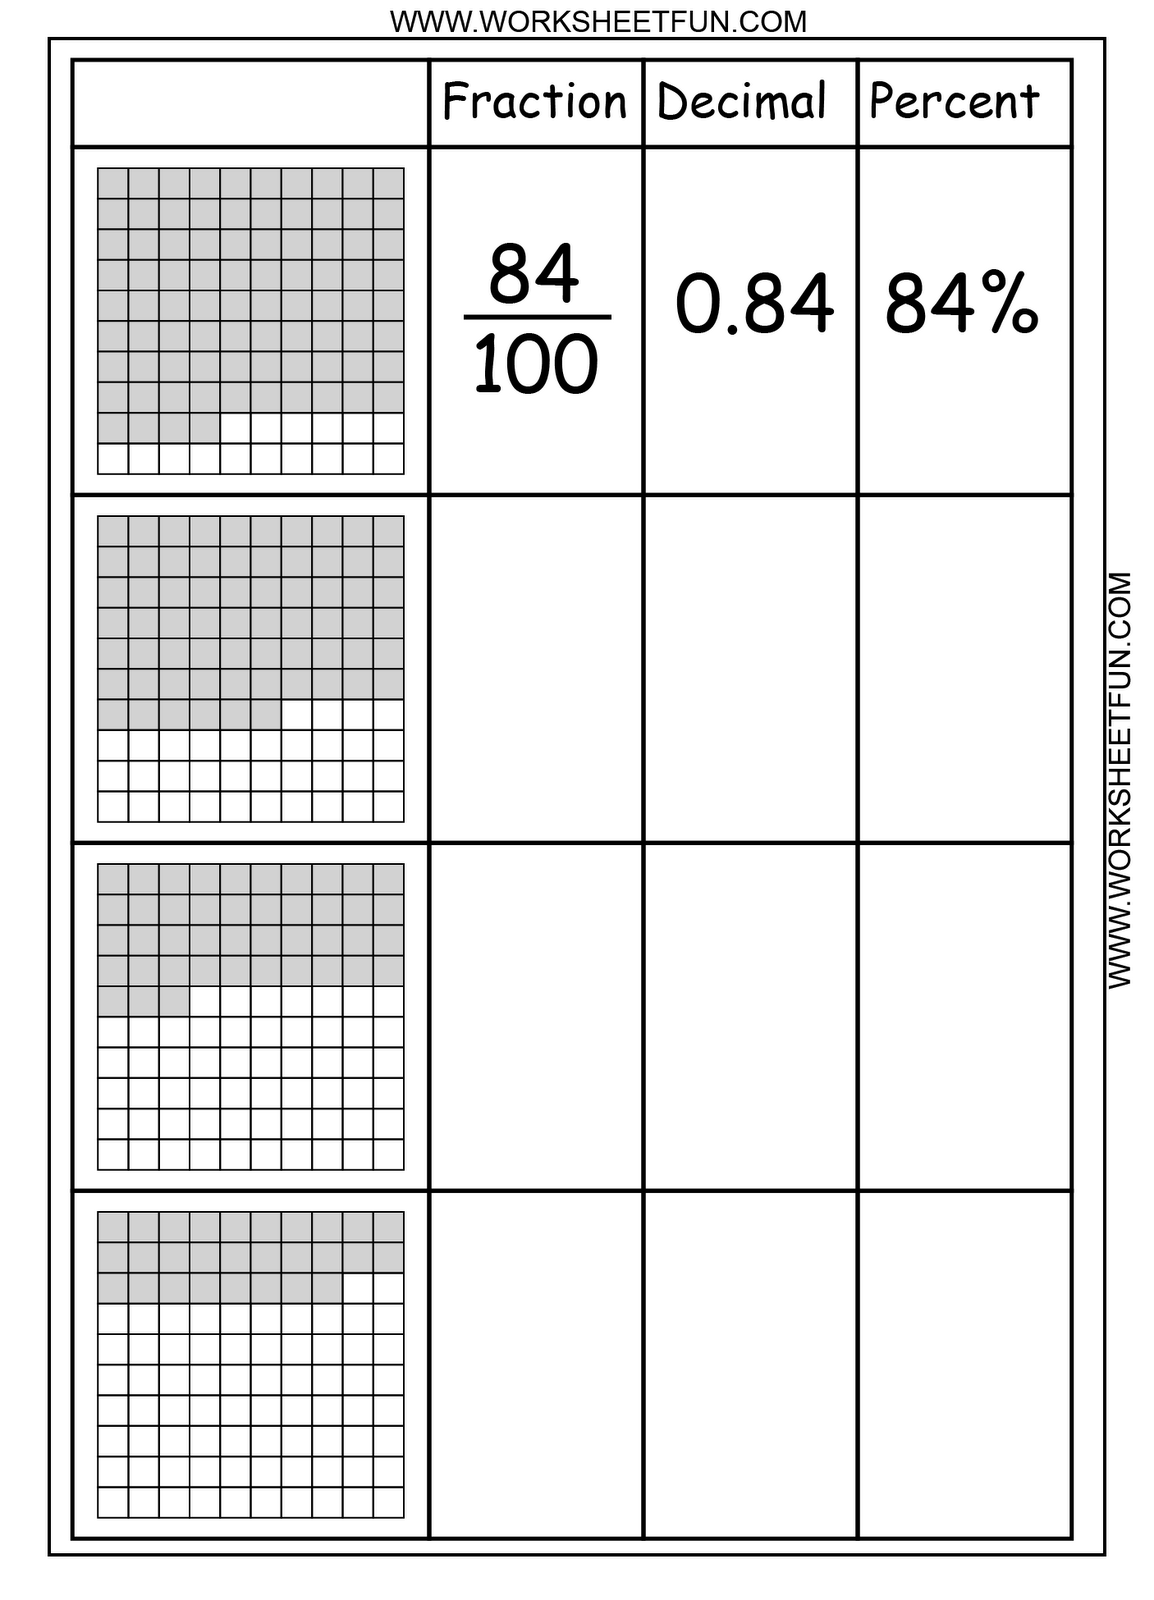 math worksheet : 1000 images about fractions decimals percents on pinterest  : Change Fractions To Decimals Worksheet